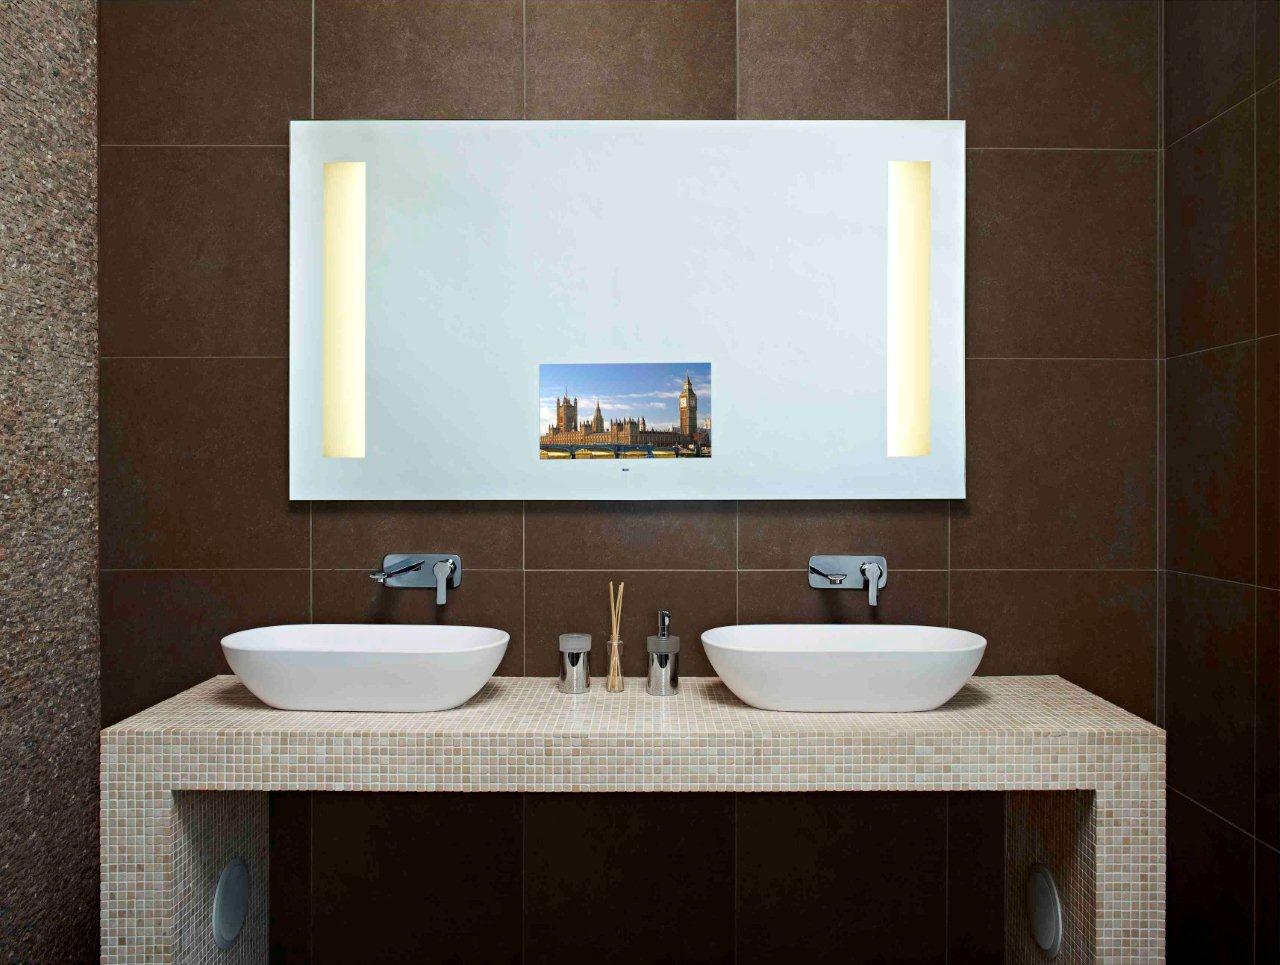 mirror-tv-bathroom